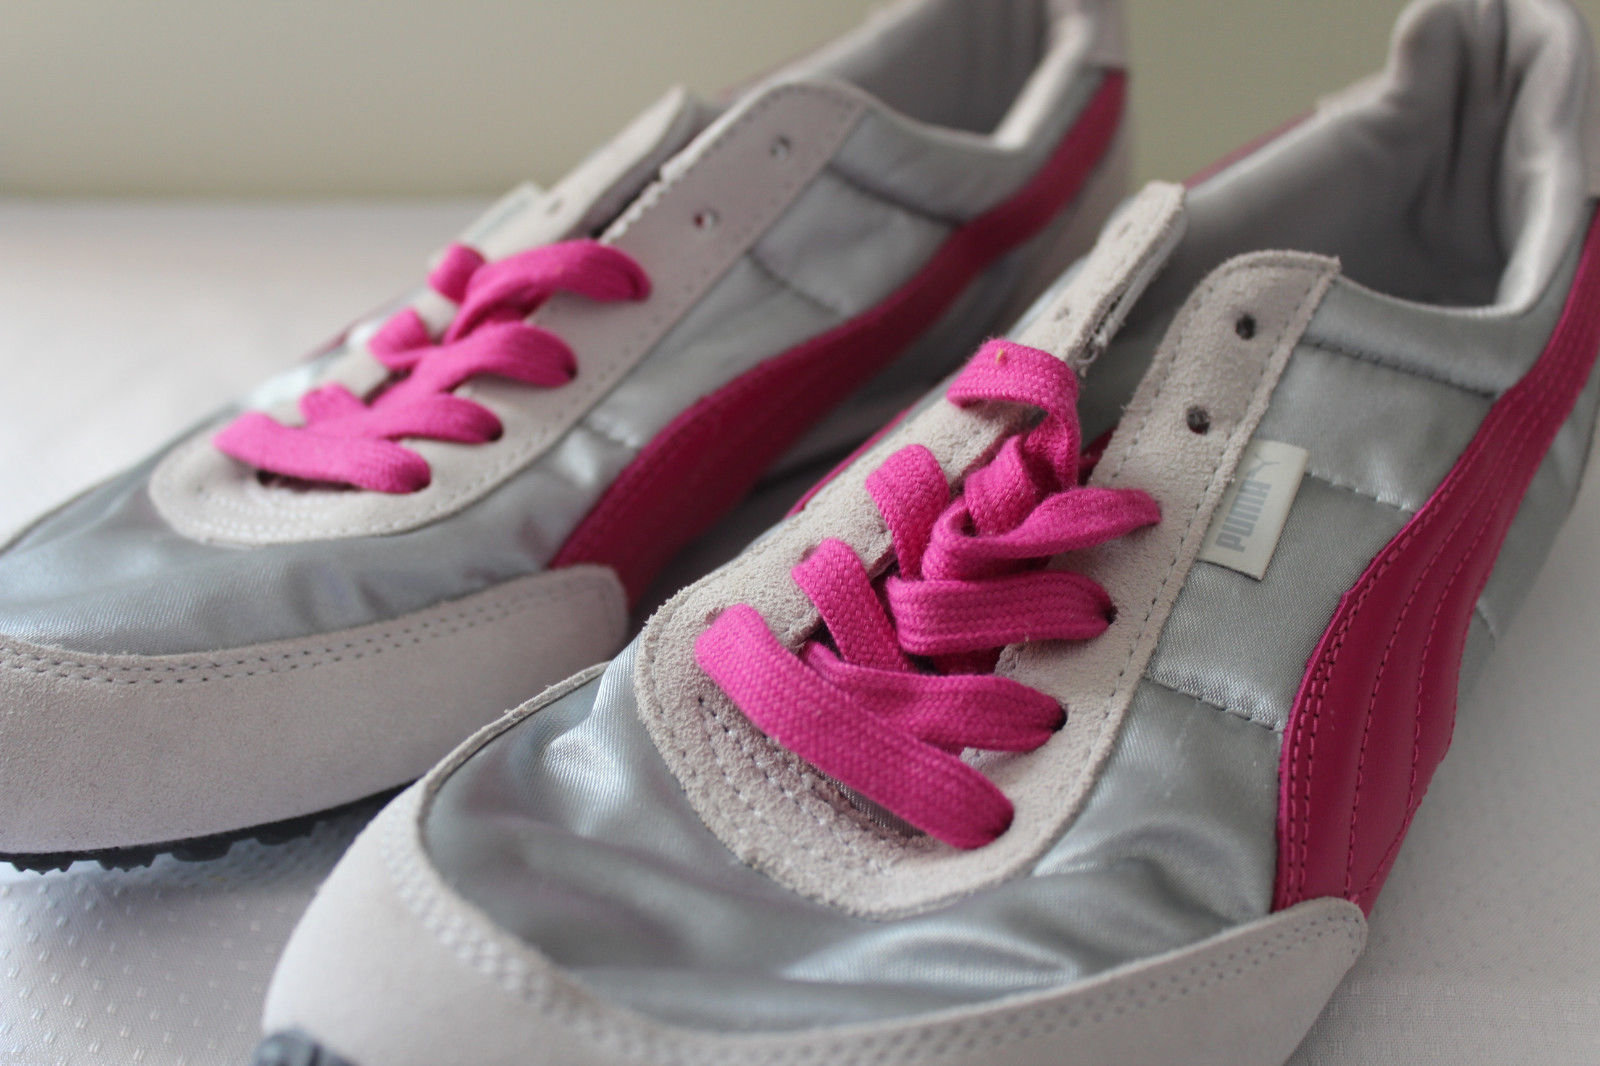 b639418ebe5 PUMA Eco Ortholite Leather Women s Silver Pink Athletic Shoes Sneakers 9